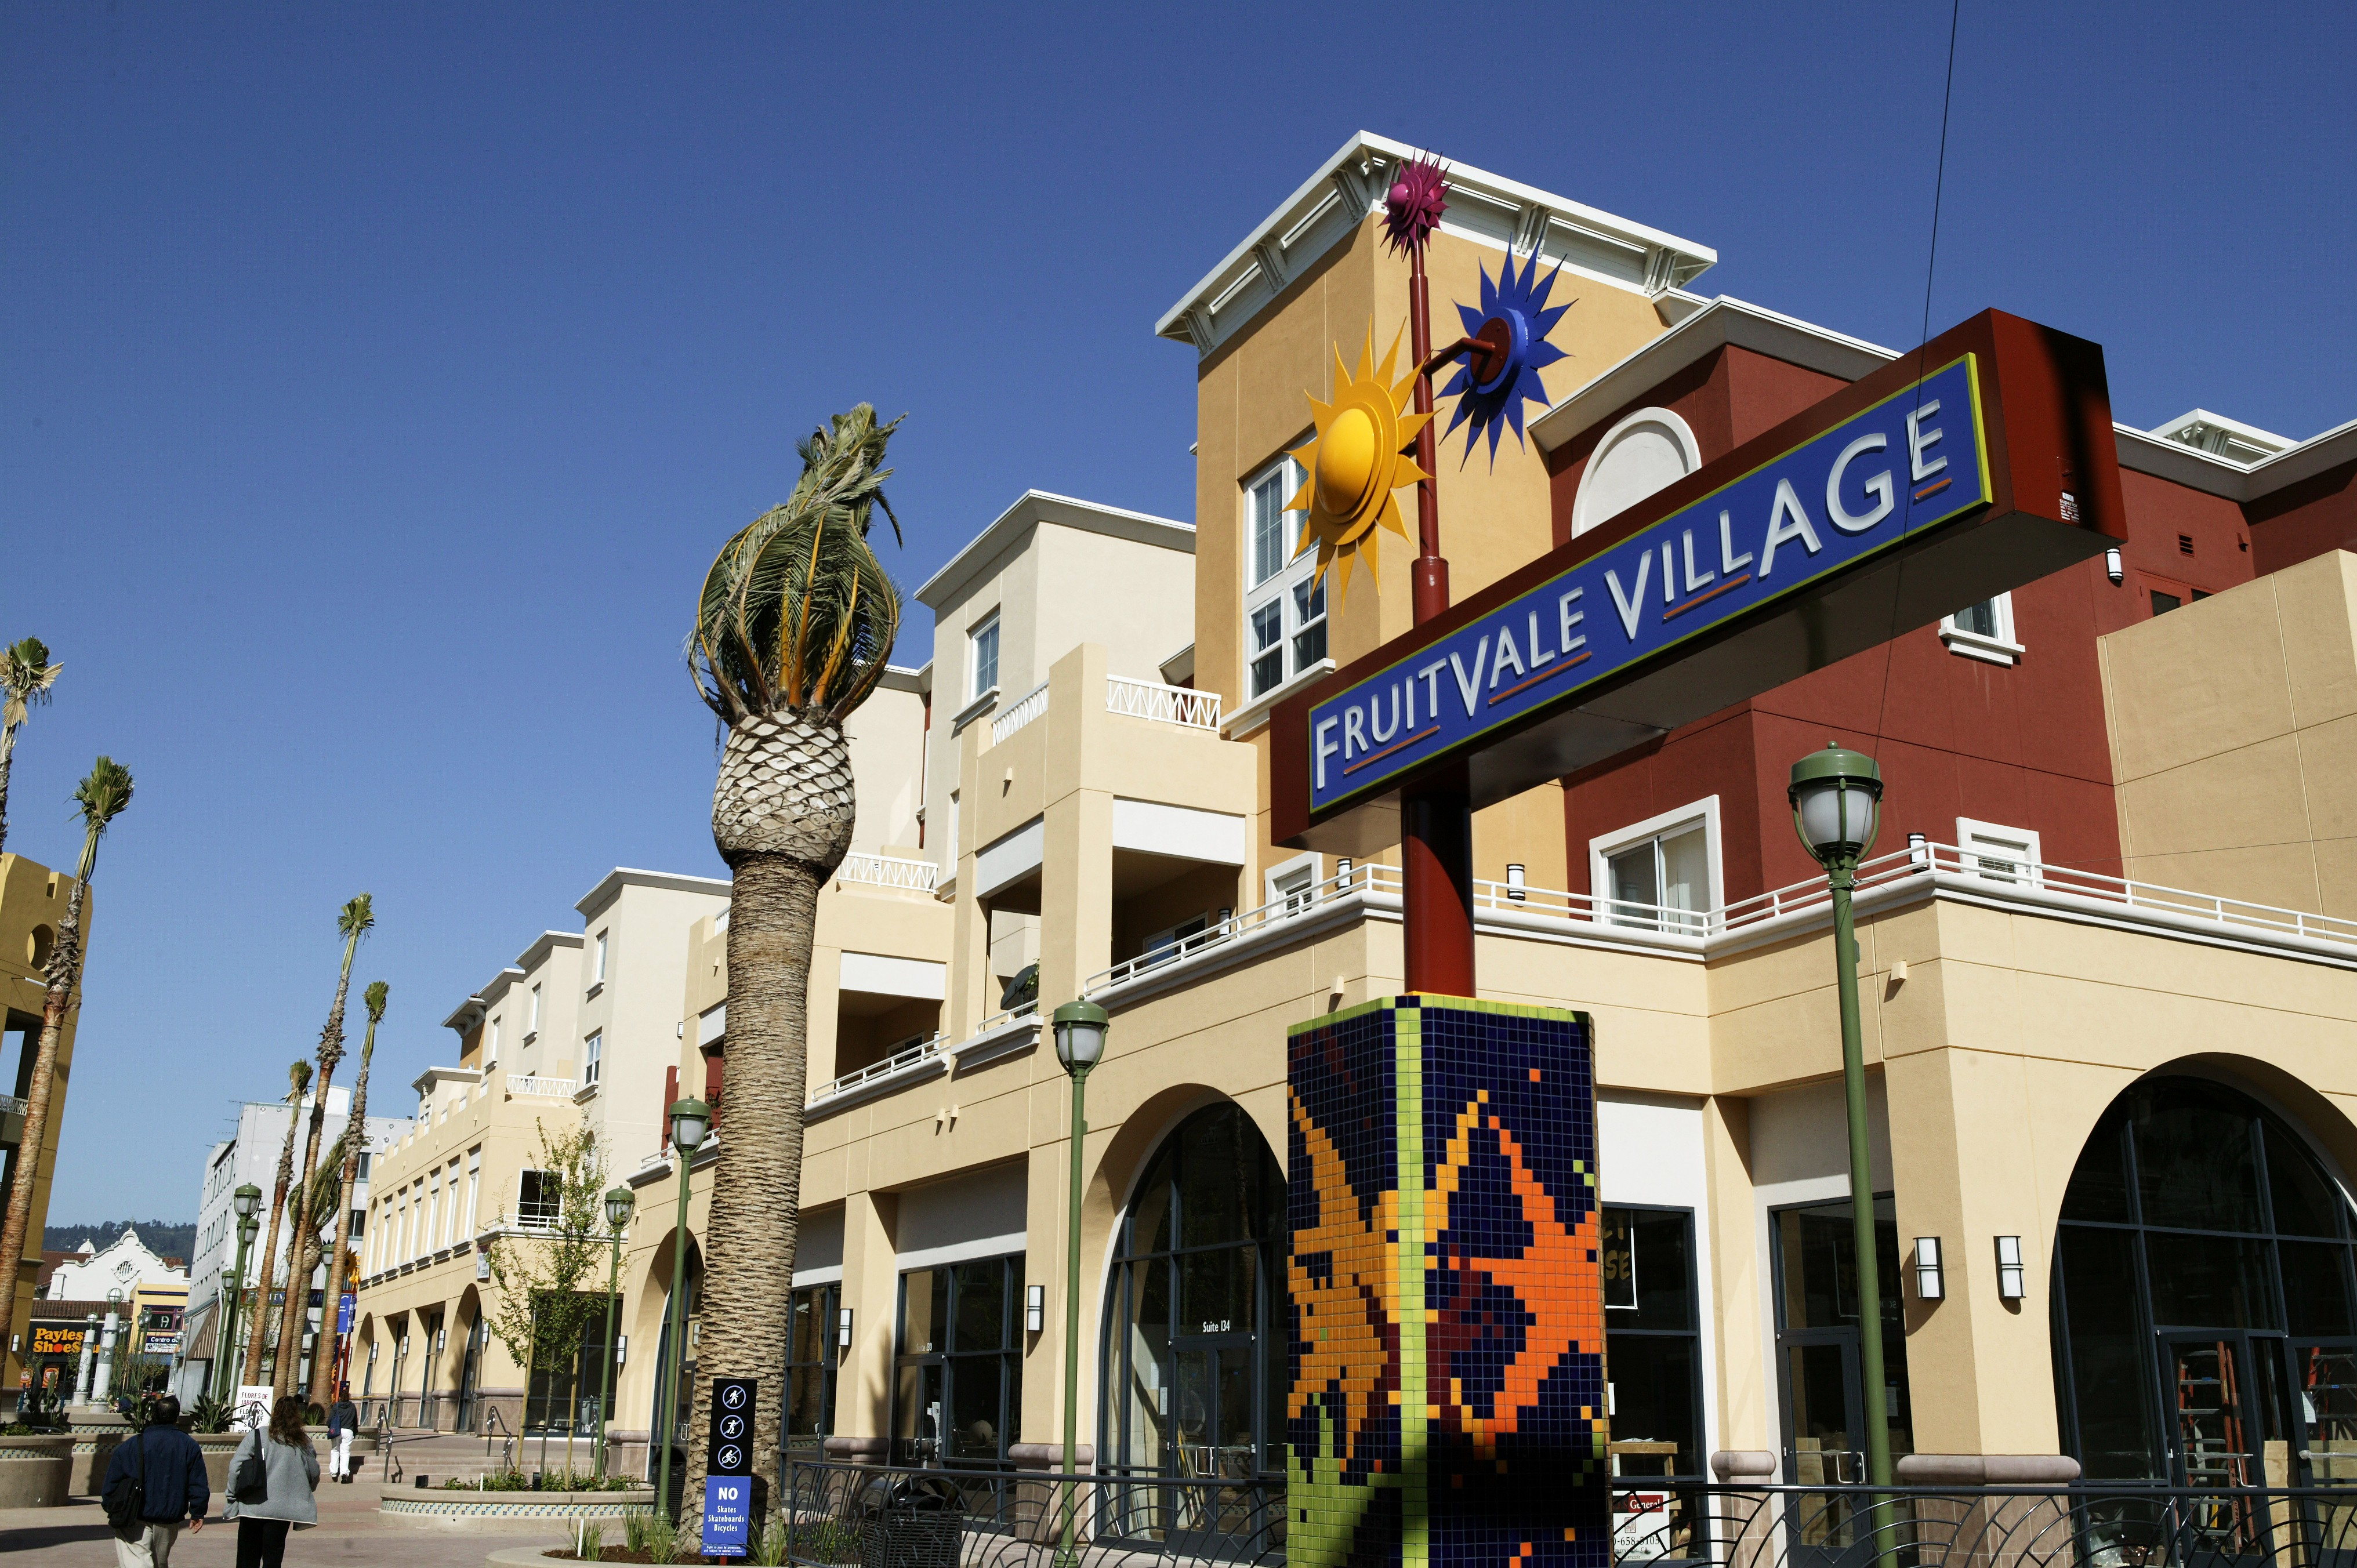 fruitvale village exterior